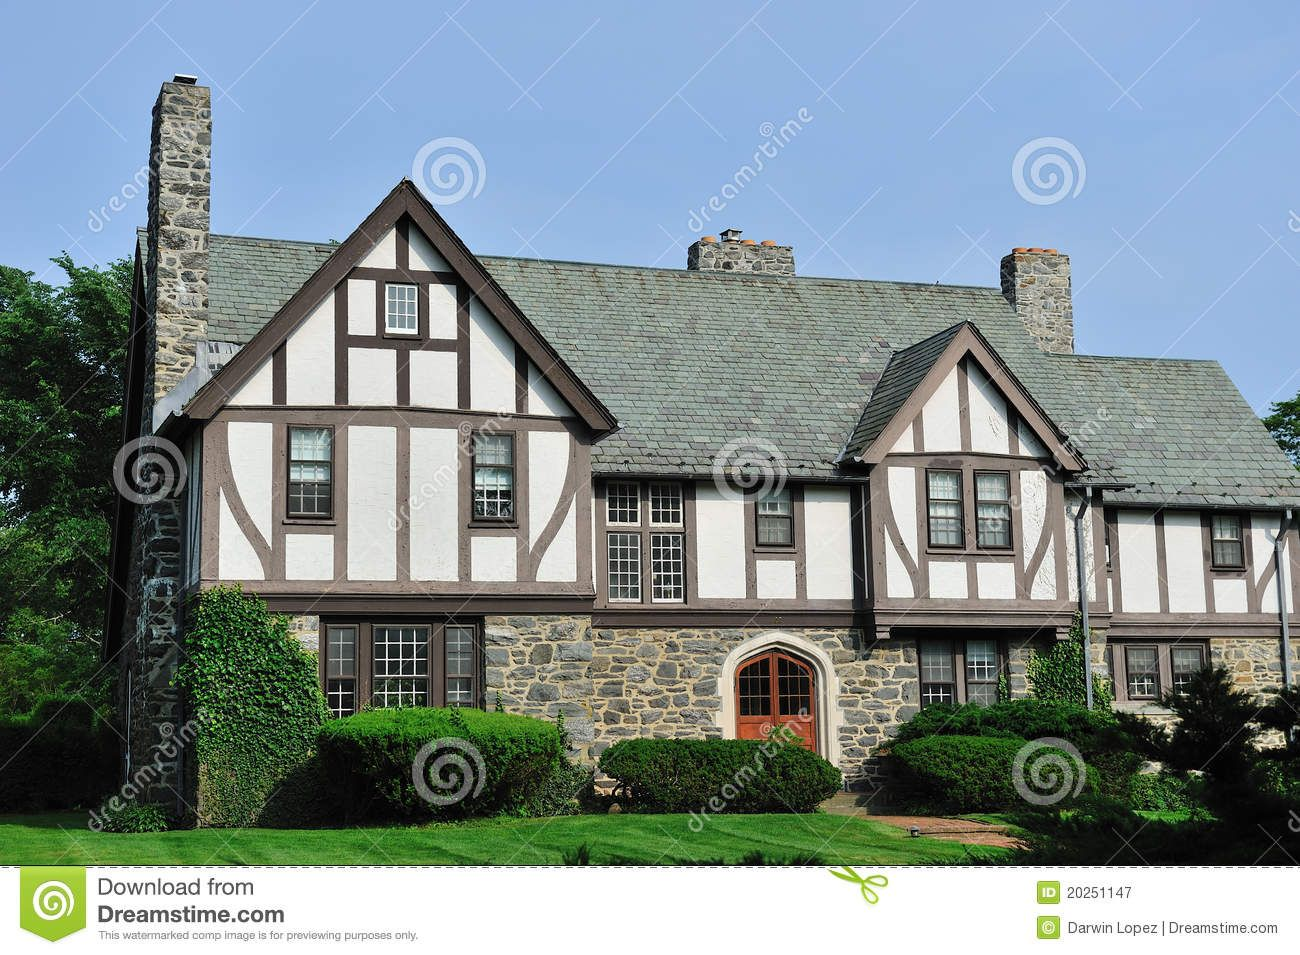 tudor homes pictures | Royalty Free Stock Photography: English Tudor house  exterior